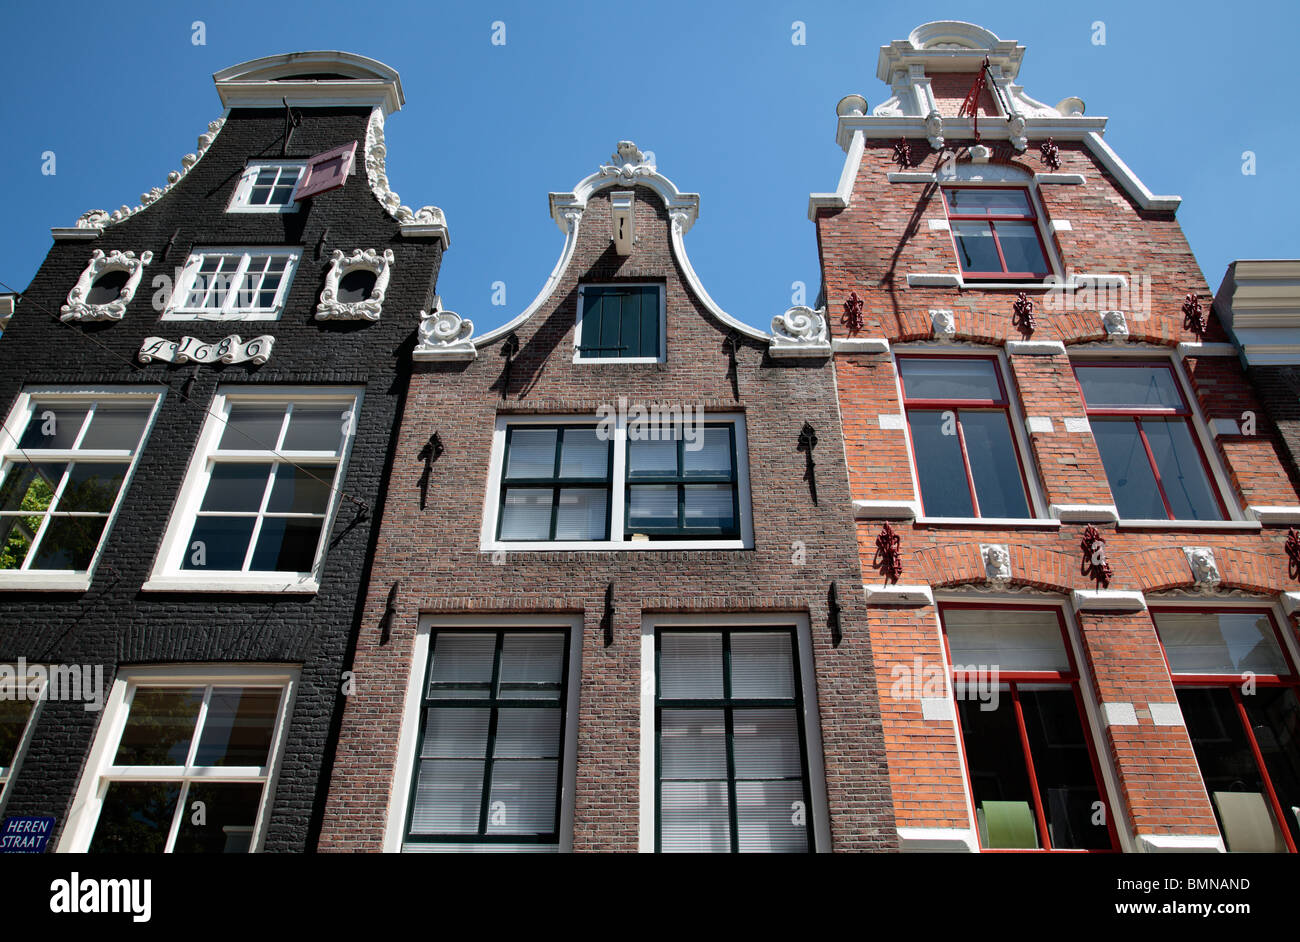 Homes houses along Prinsengracht - Stock Image